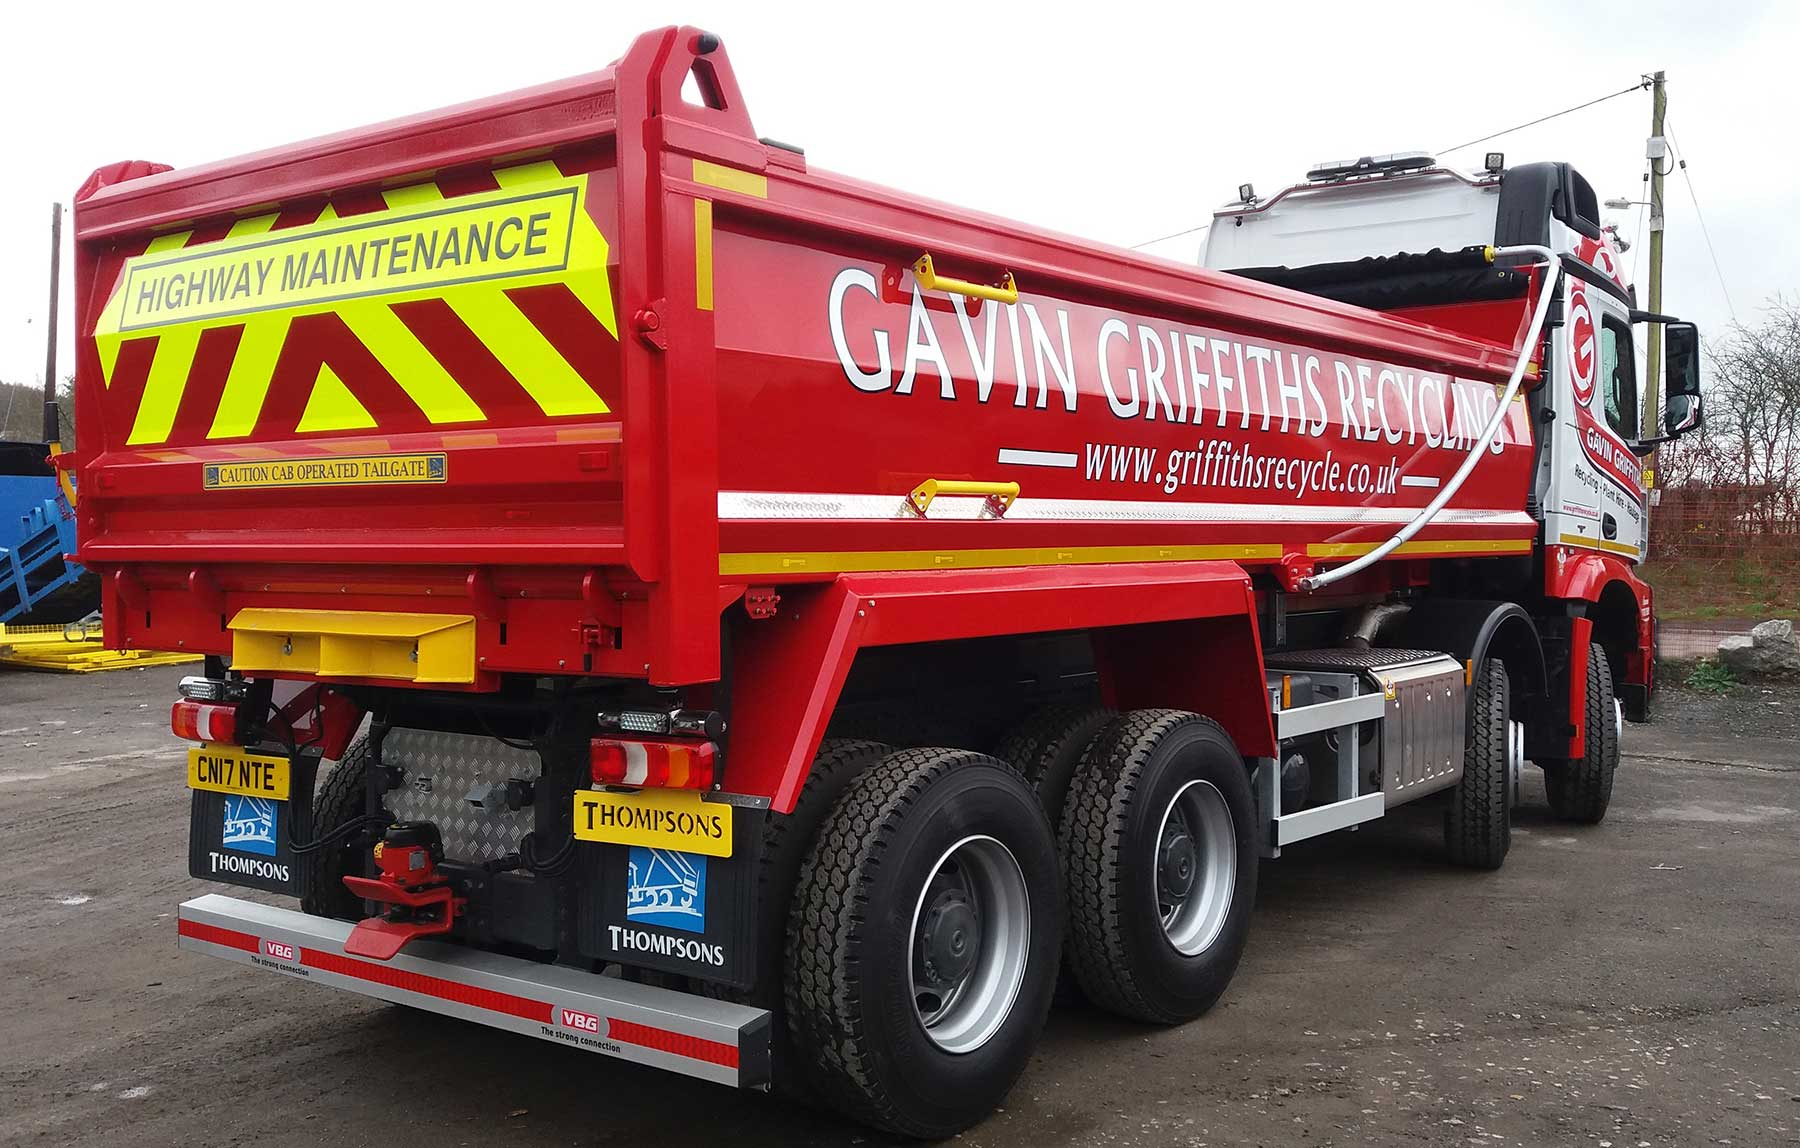 Gavin Griffiths Recycling Highway Maintenance